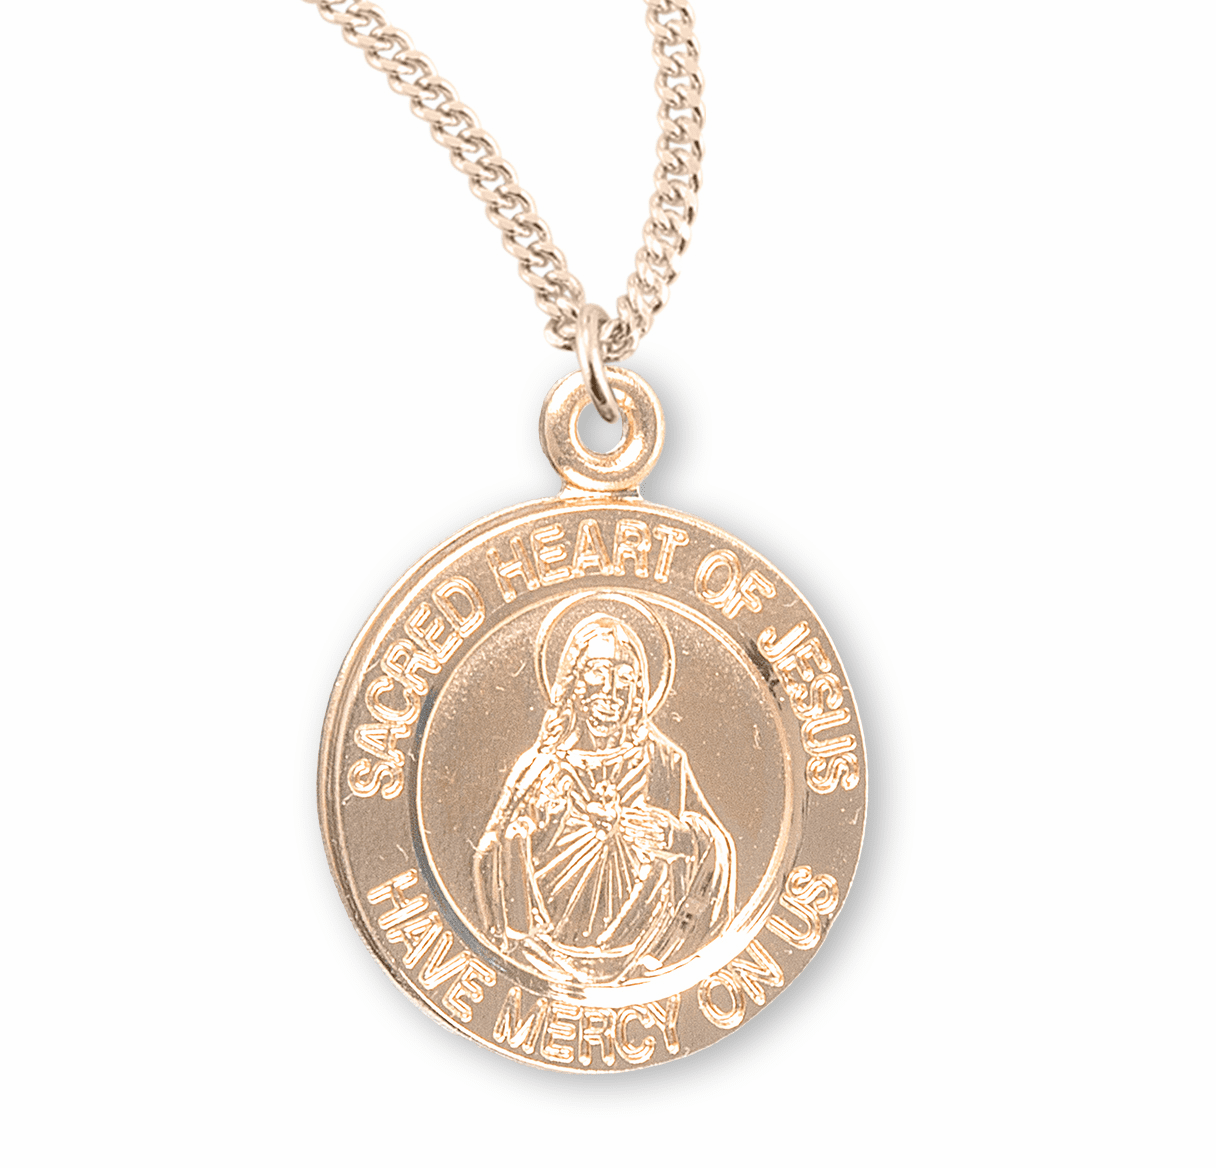 HMH Religious Sacred Heart of Jesus Gold/Sterling Silver Pendant Necklace